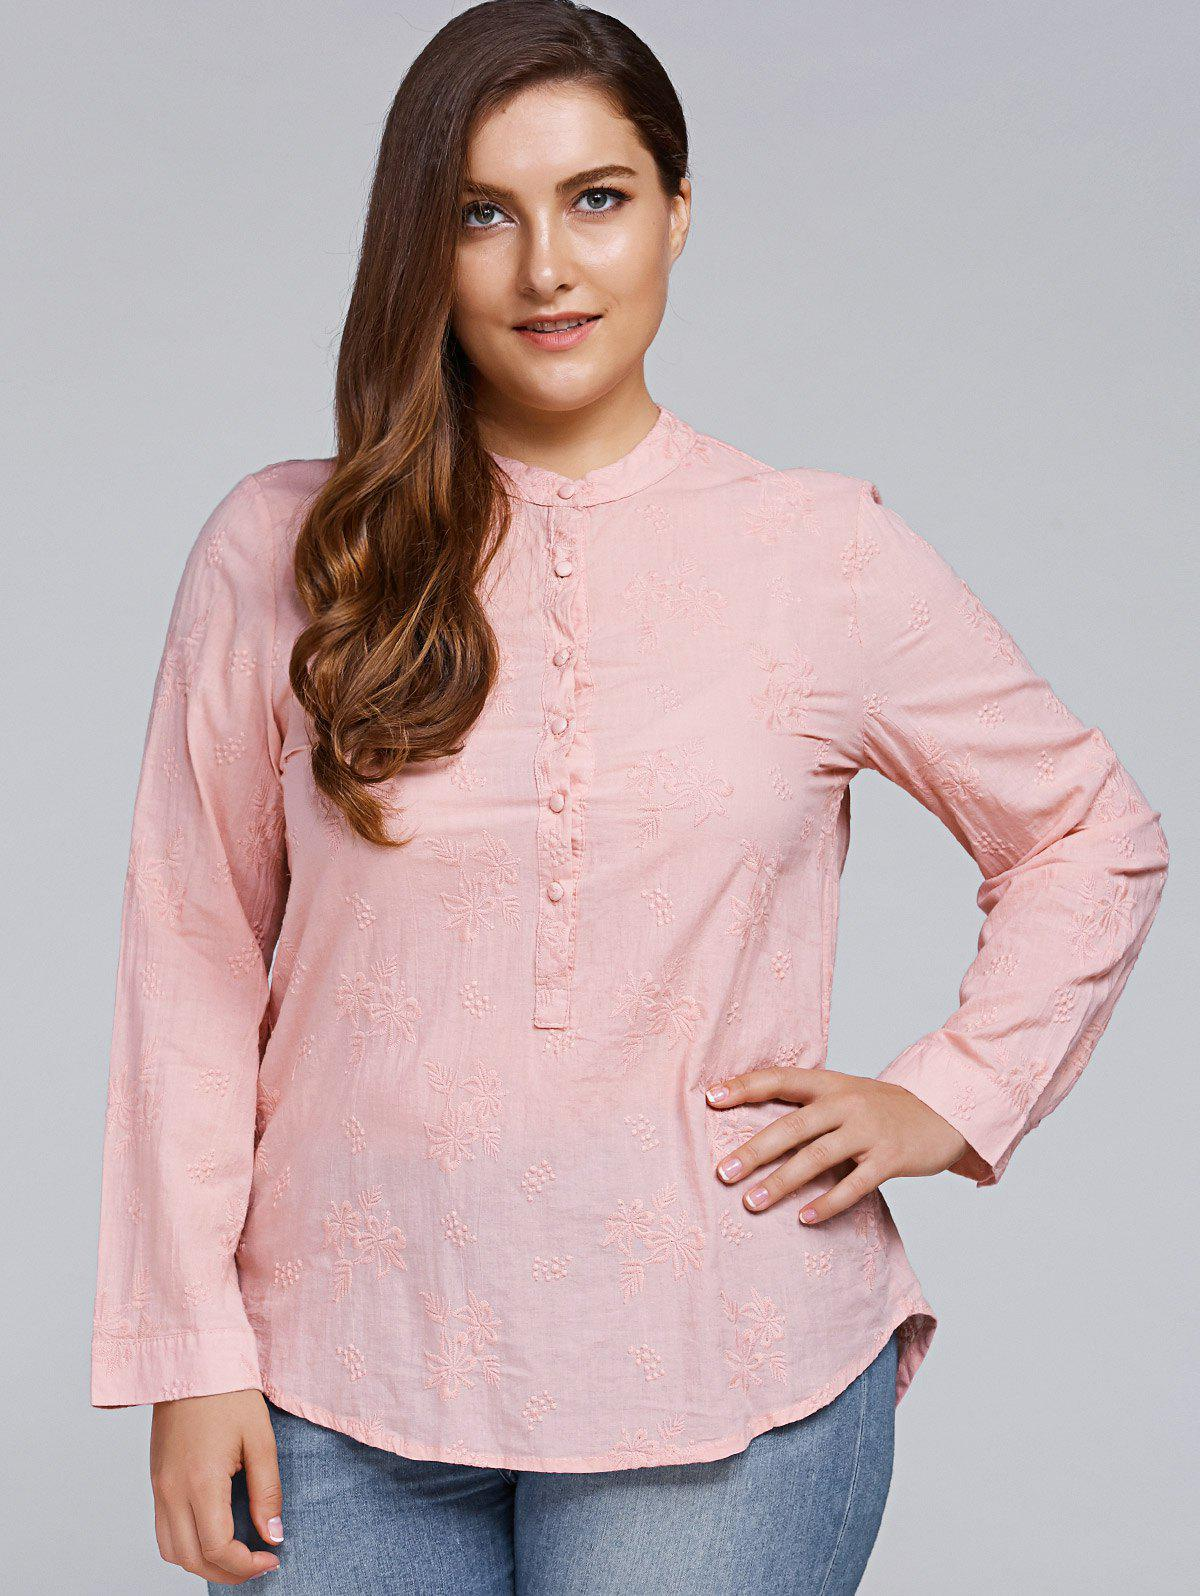 Plus Size Long Sleeve Floral Embroidered Shirt, Light pink